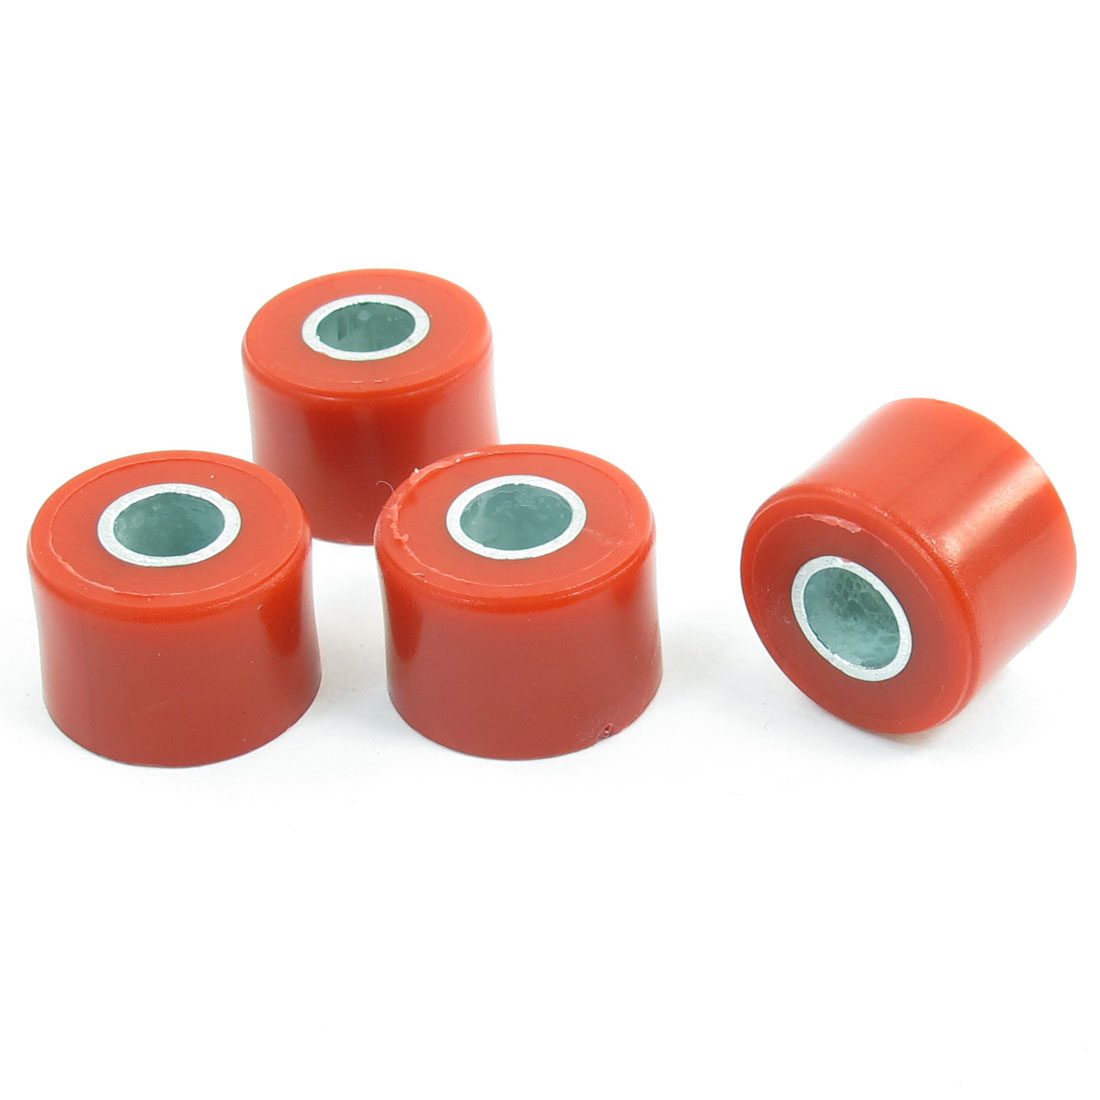 4 Pcs Motorcycle Plastic Shell Shock Absorber Bushings Part Red